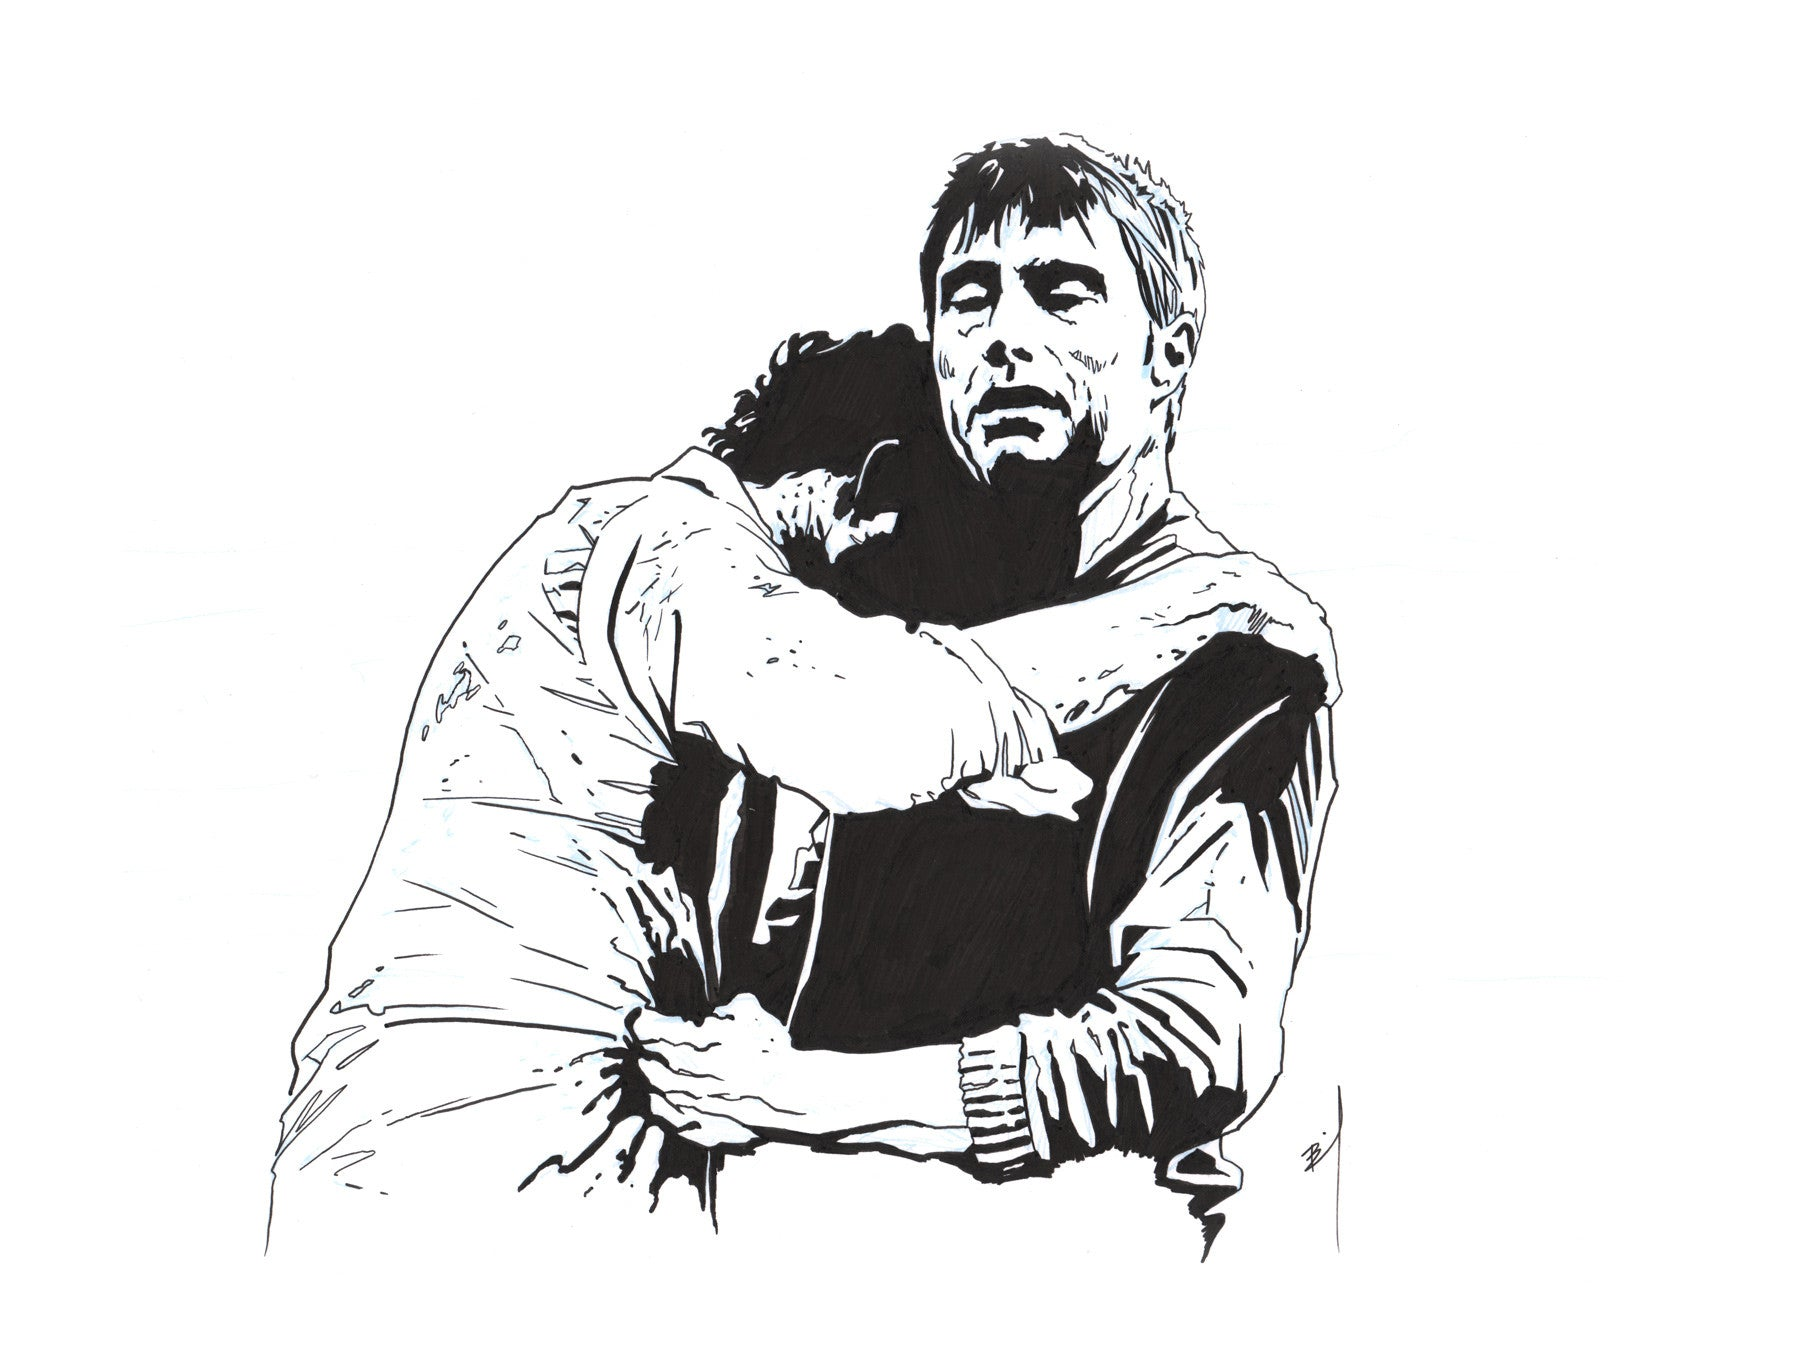 """Hannibal's Embrace"" original ink drawing"